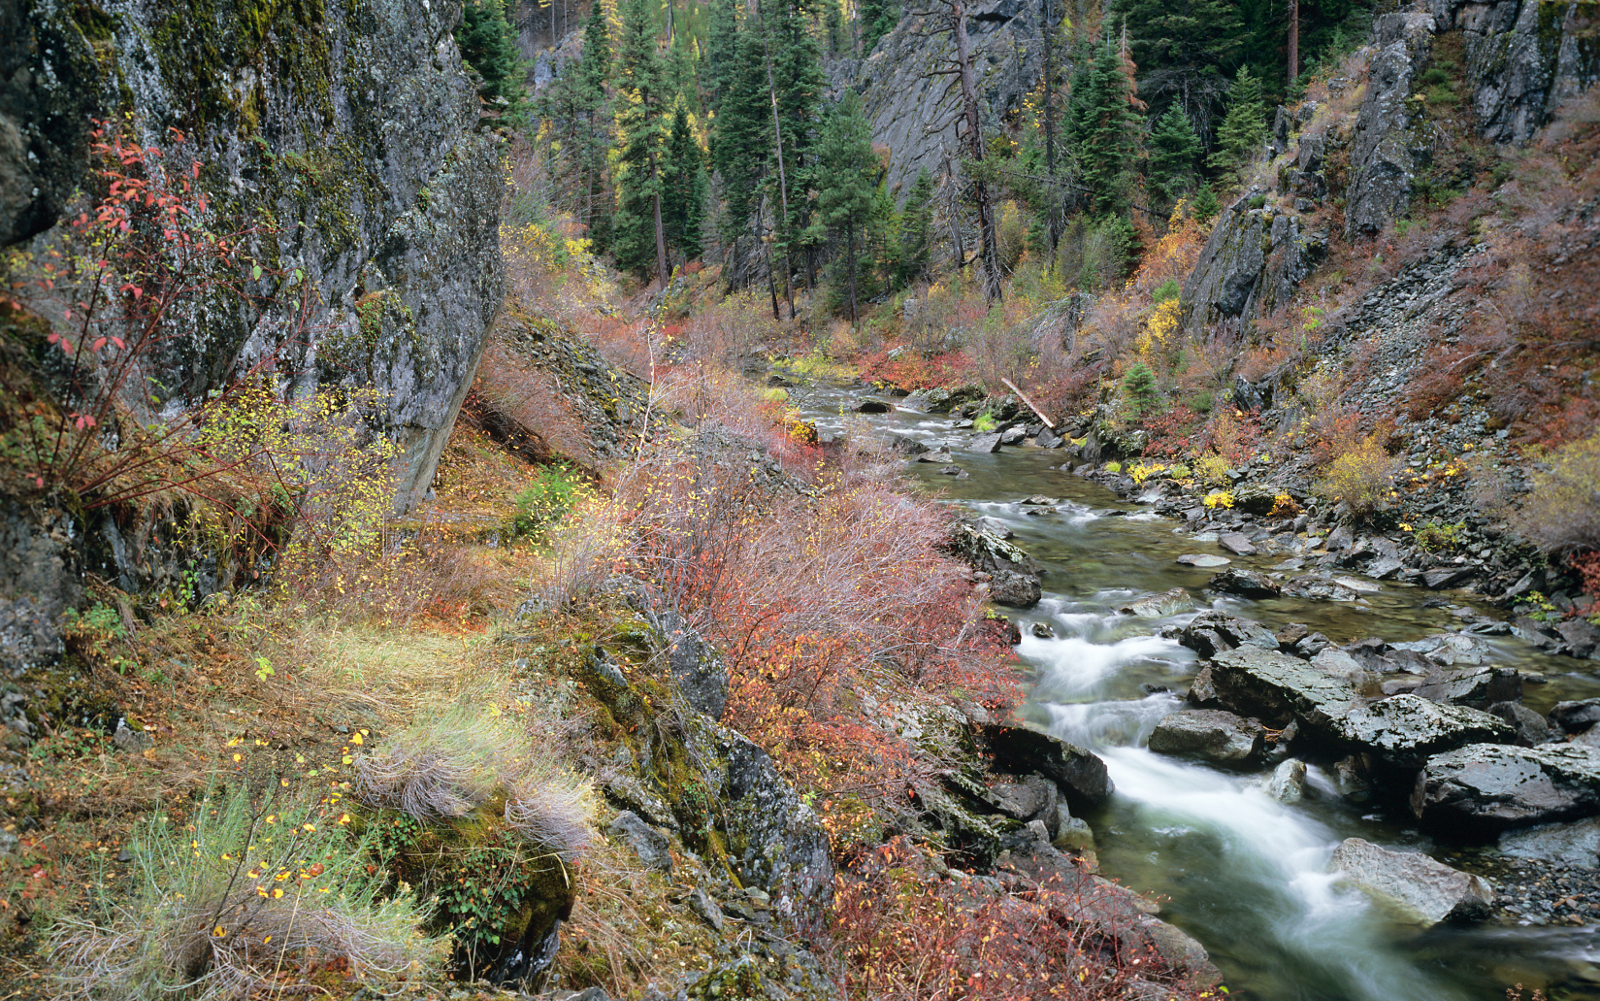 Oregon Board of Forestry Petitioned to Develop Coho Salmon Protections